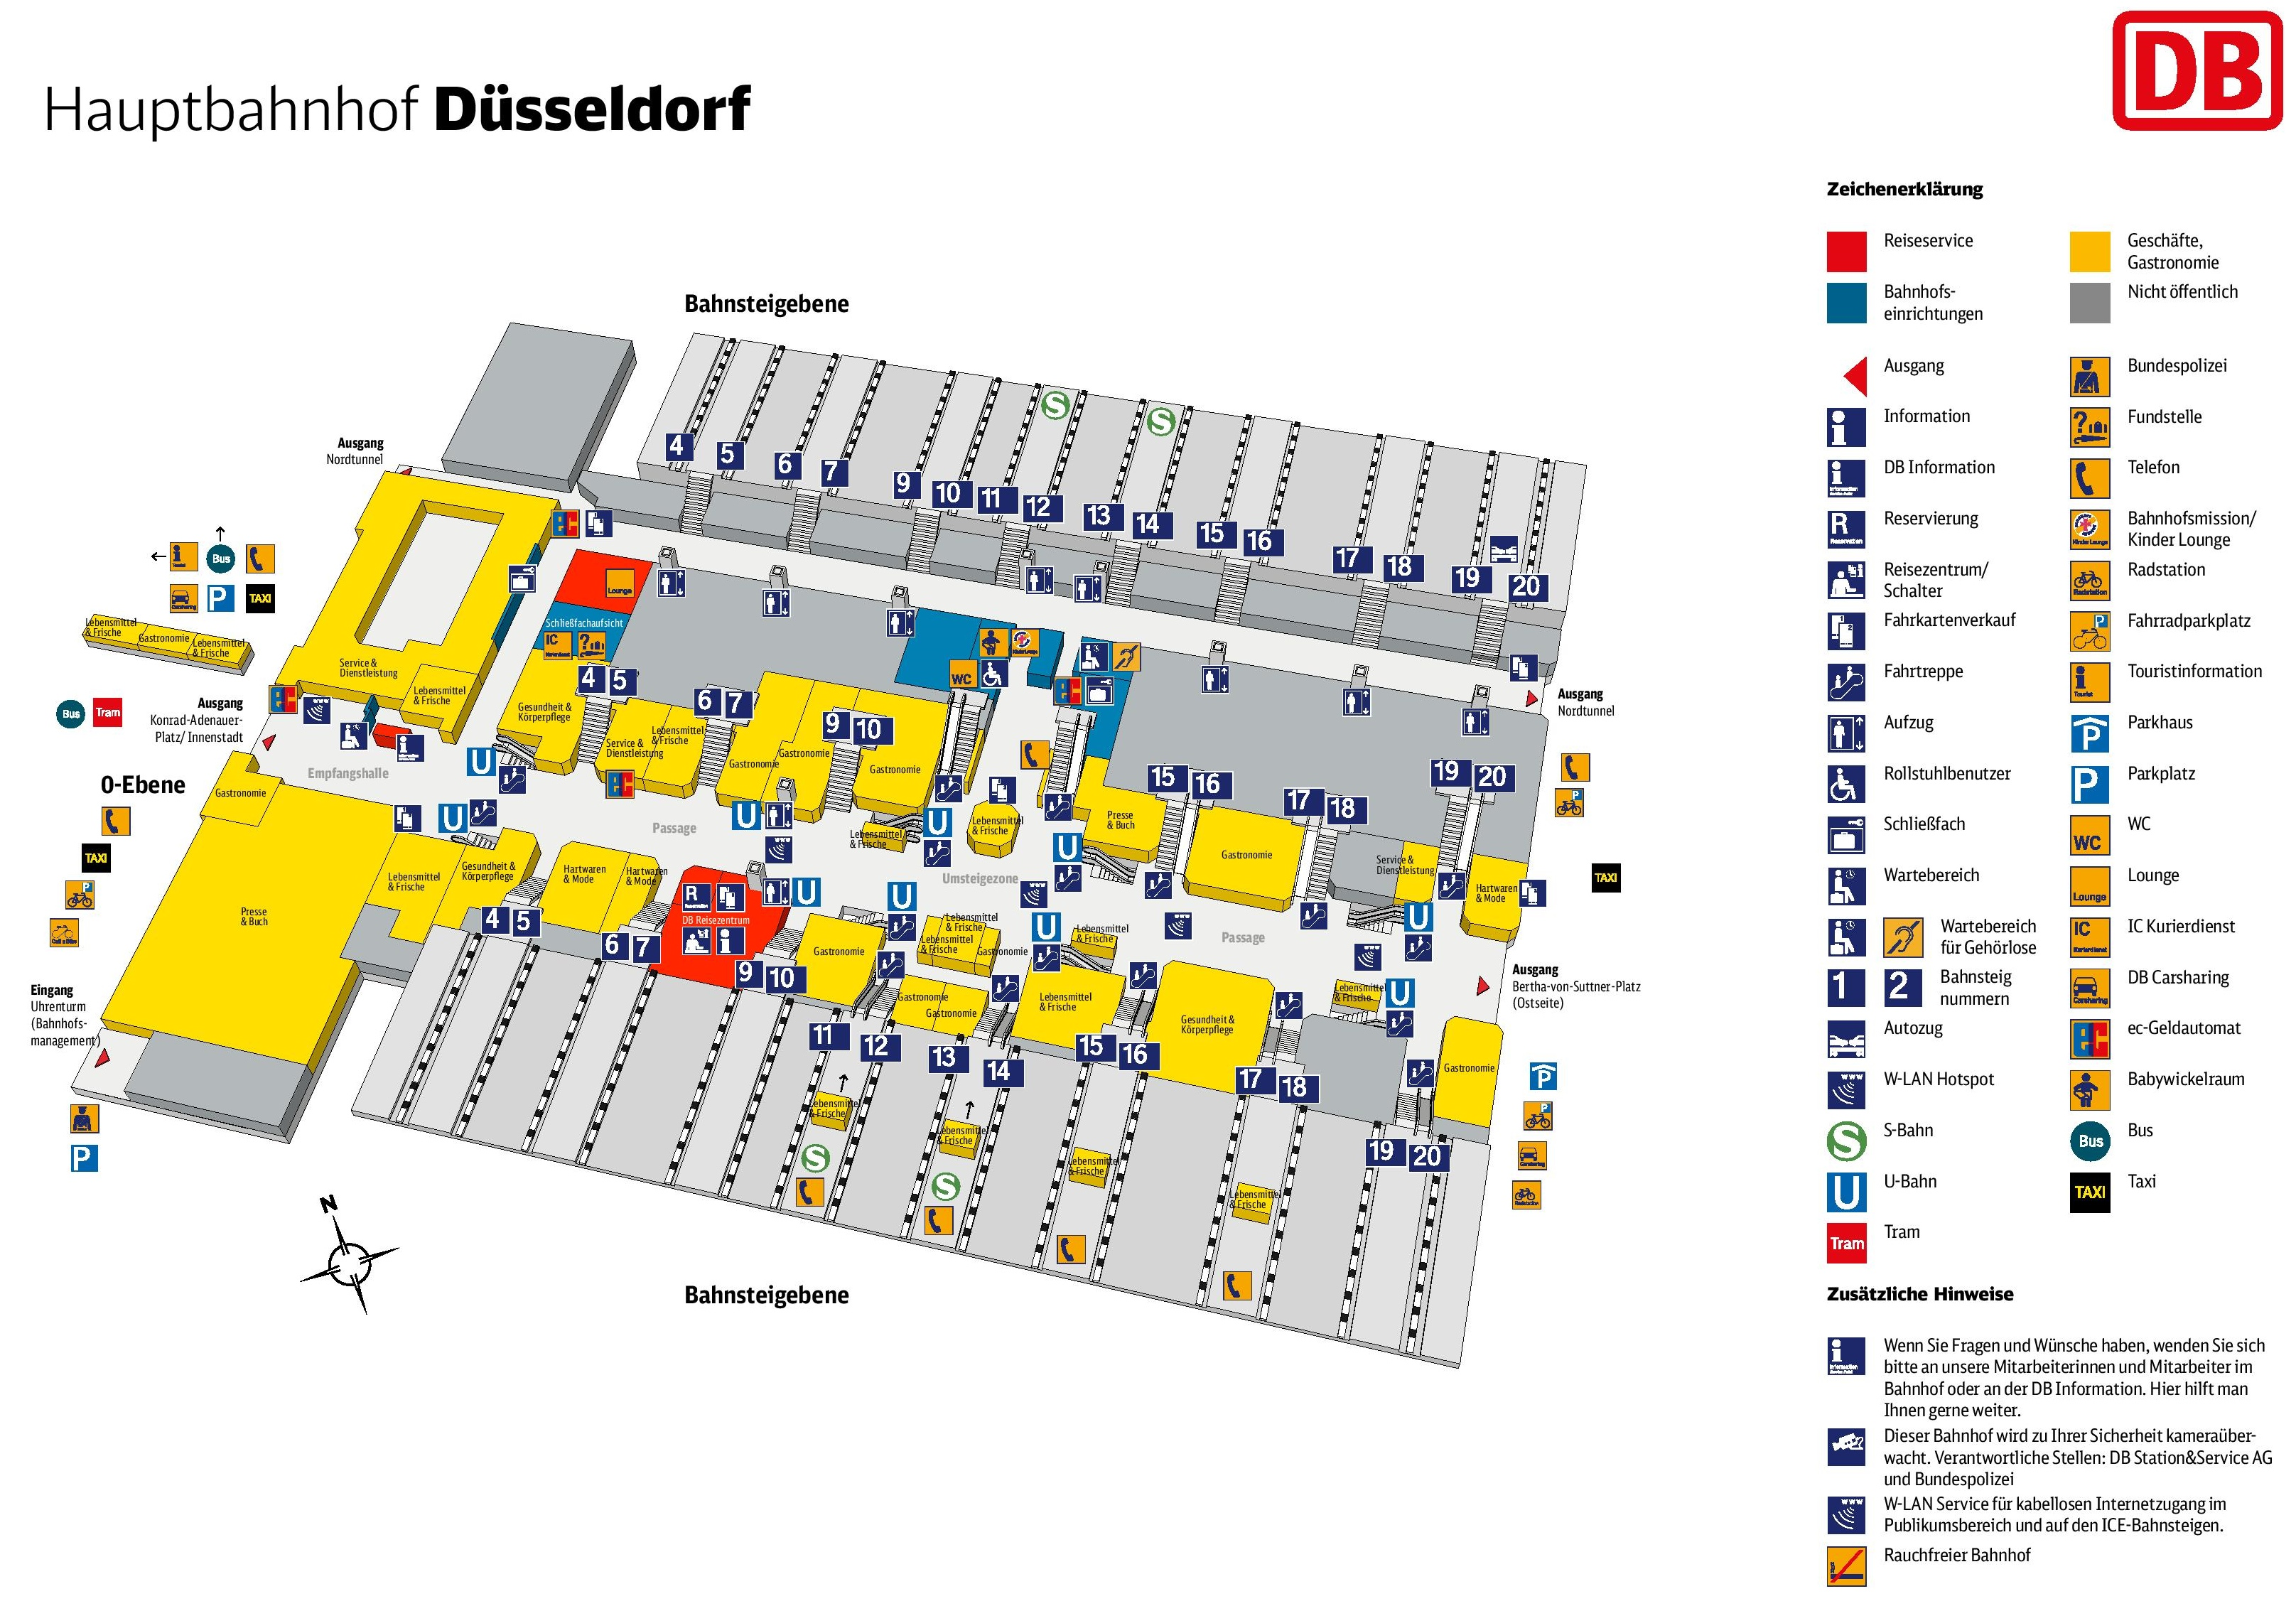 d sseldorf hauptbahnhof map. Black Bedroom Furniture Sets. Home Design Ideas